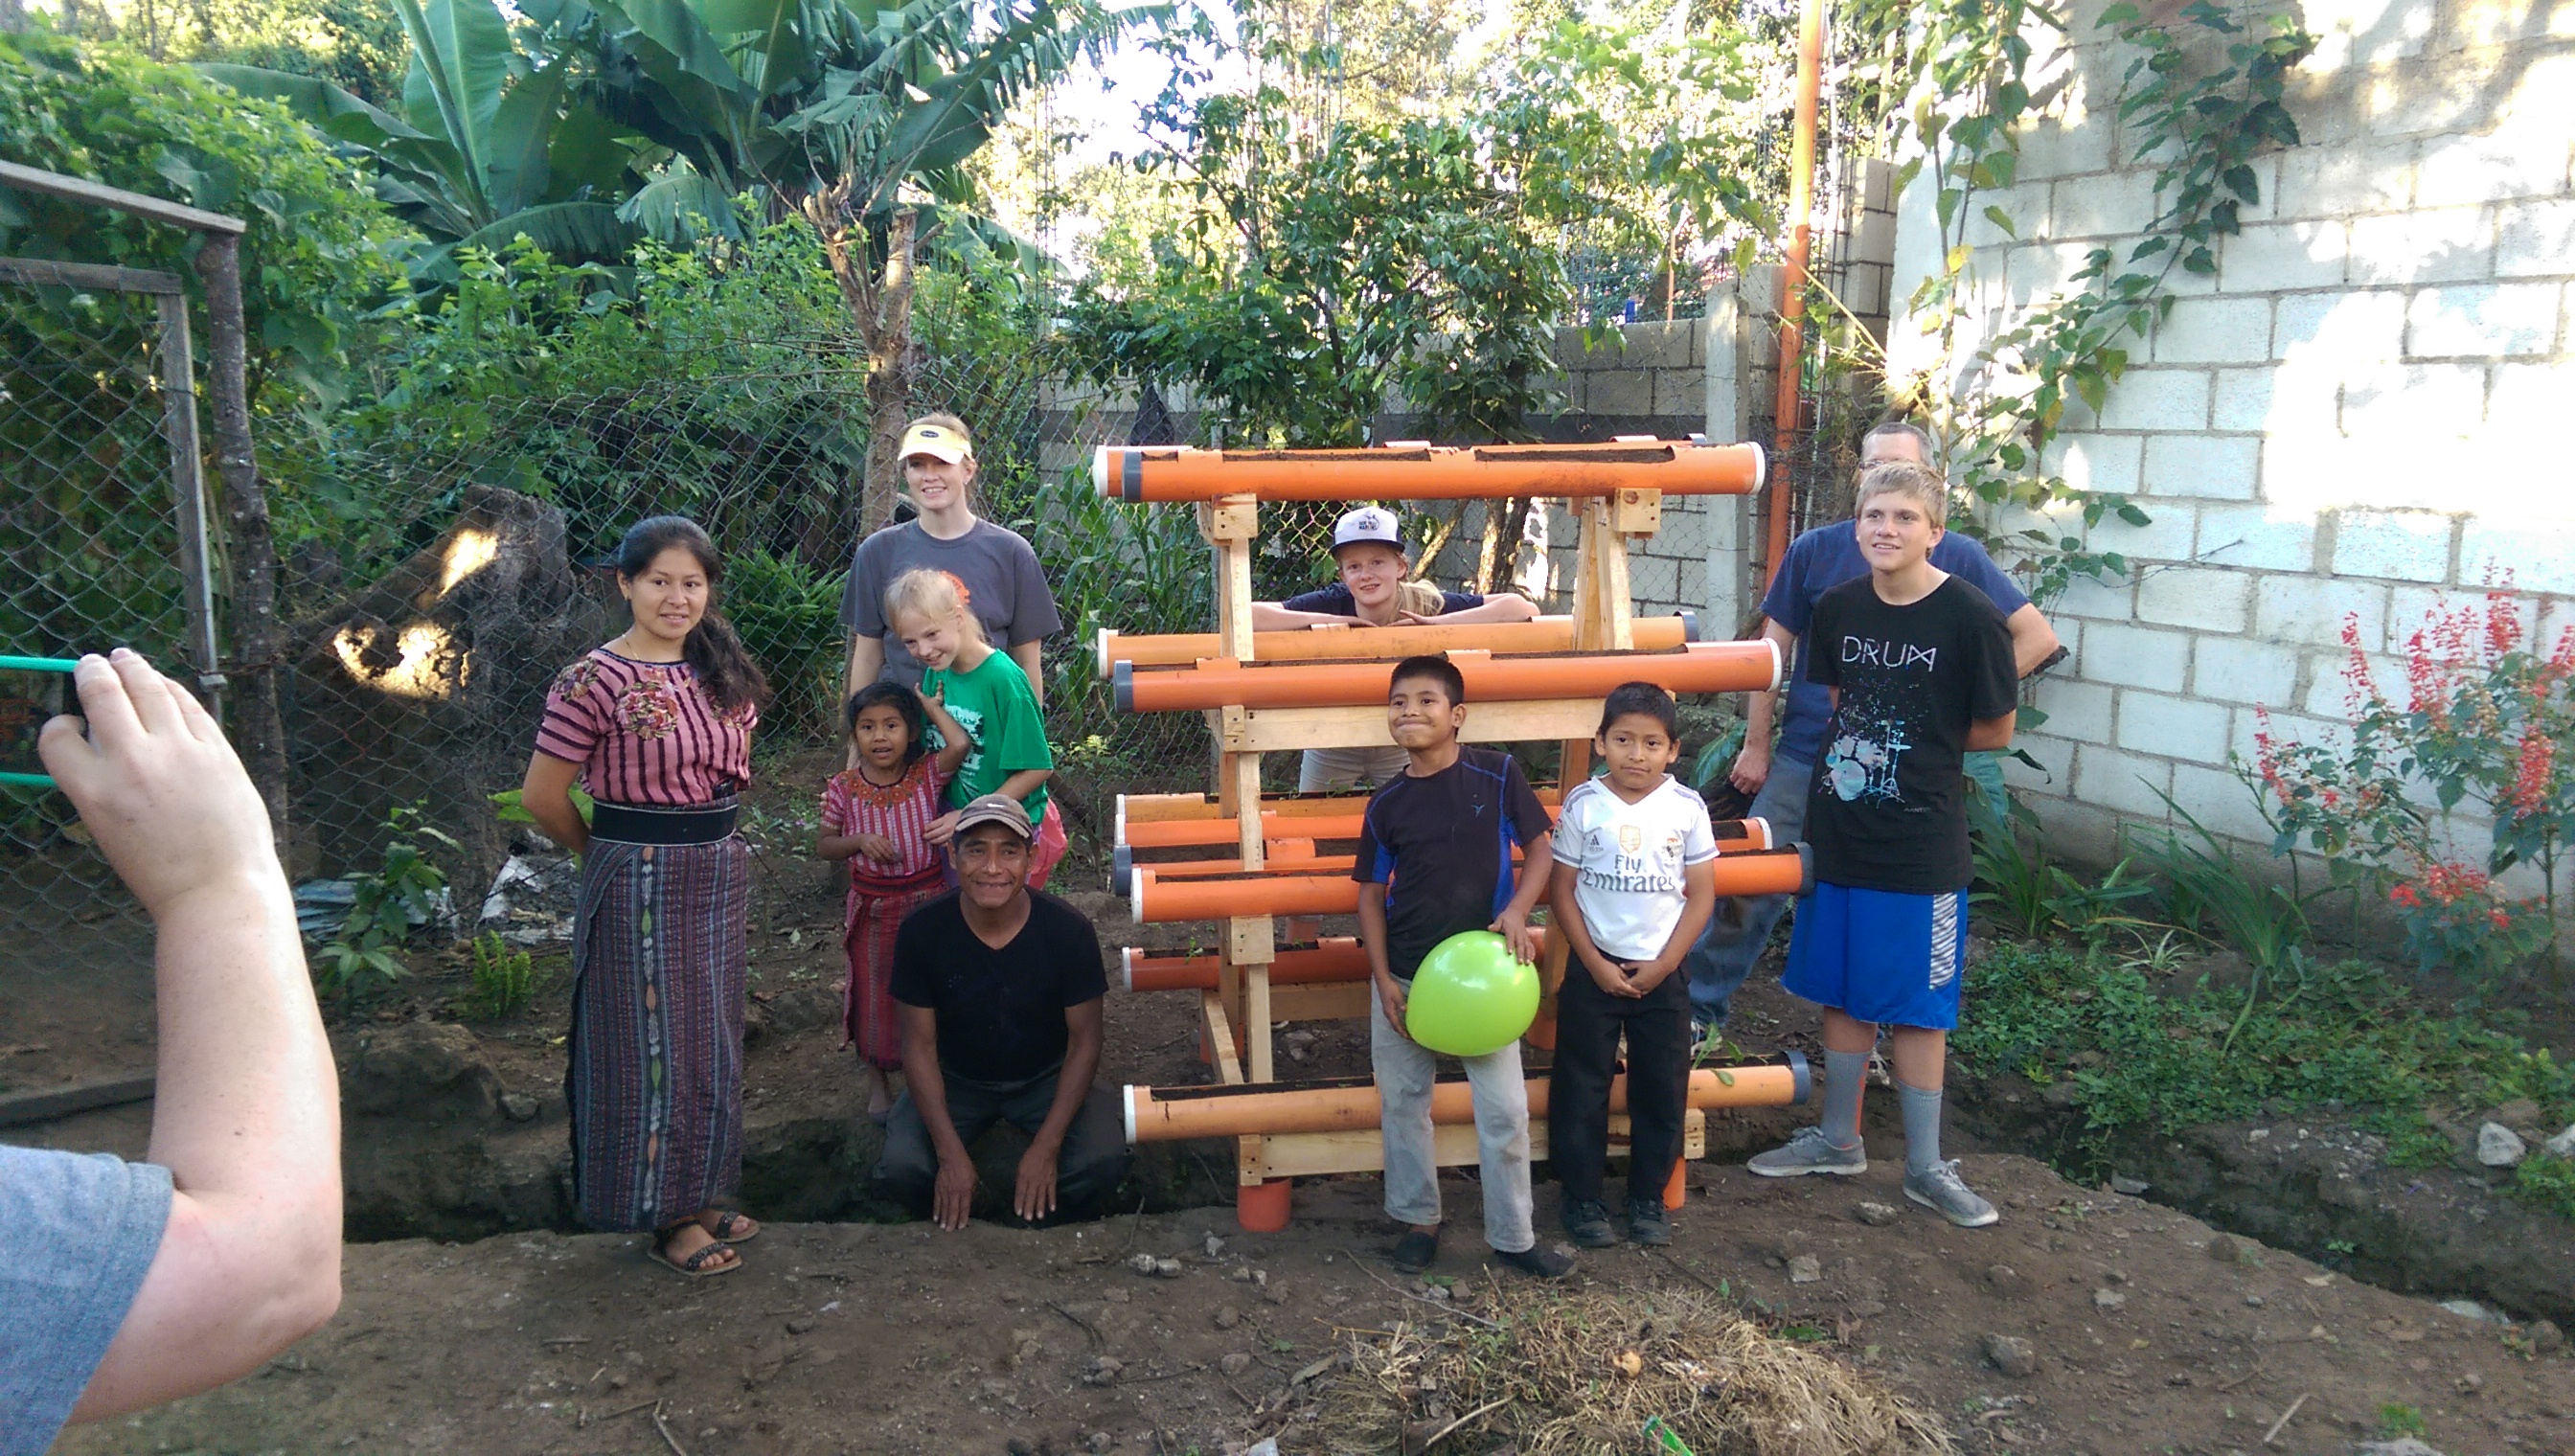 ASI Gives Back gardening stands